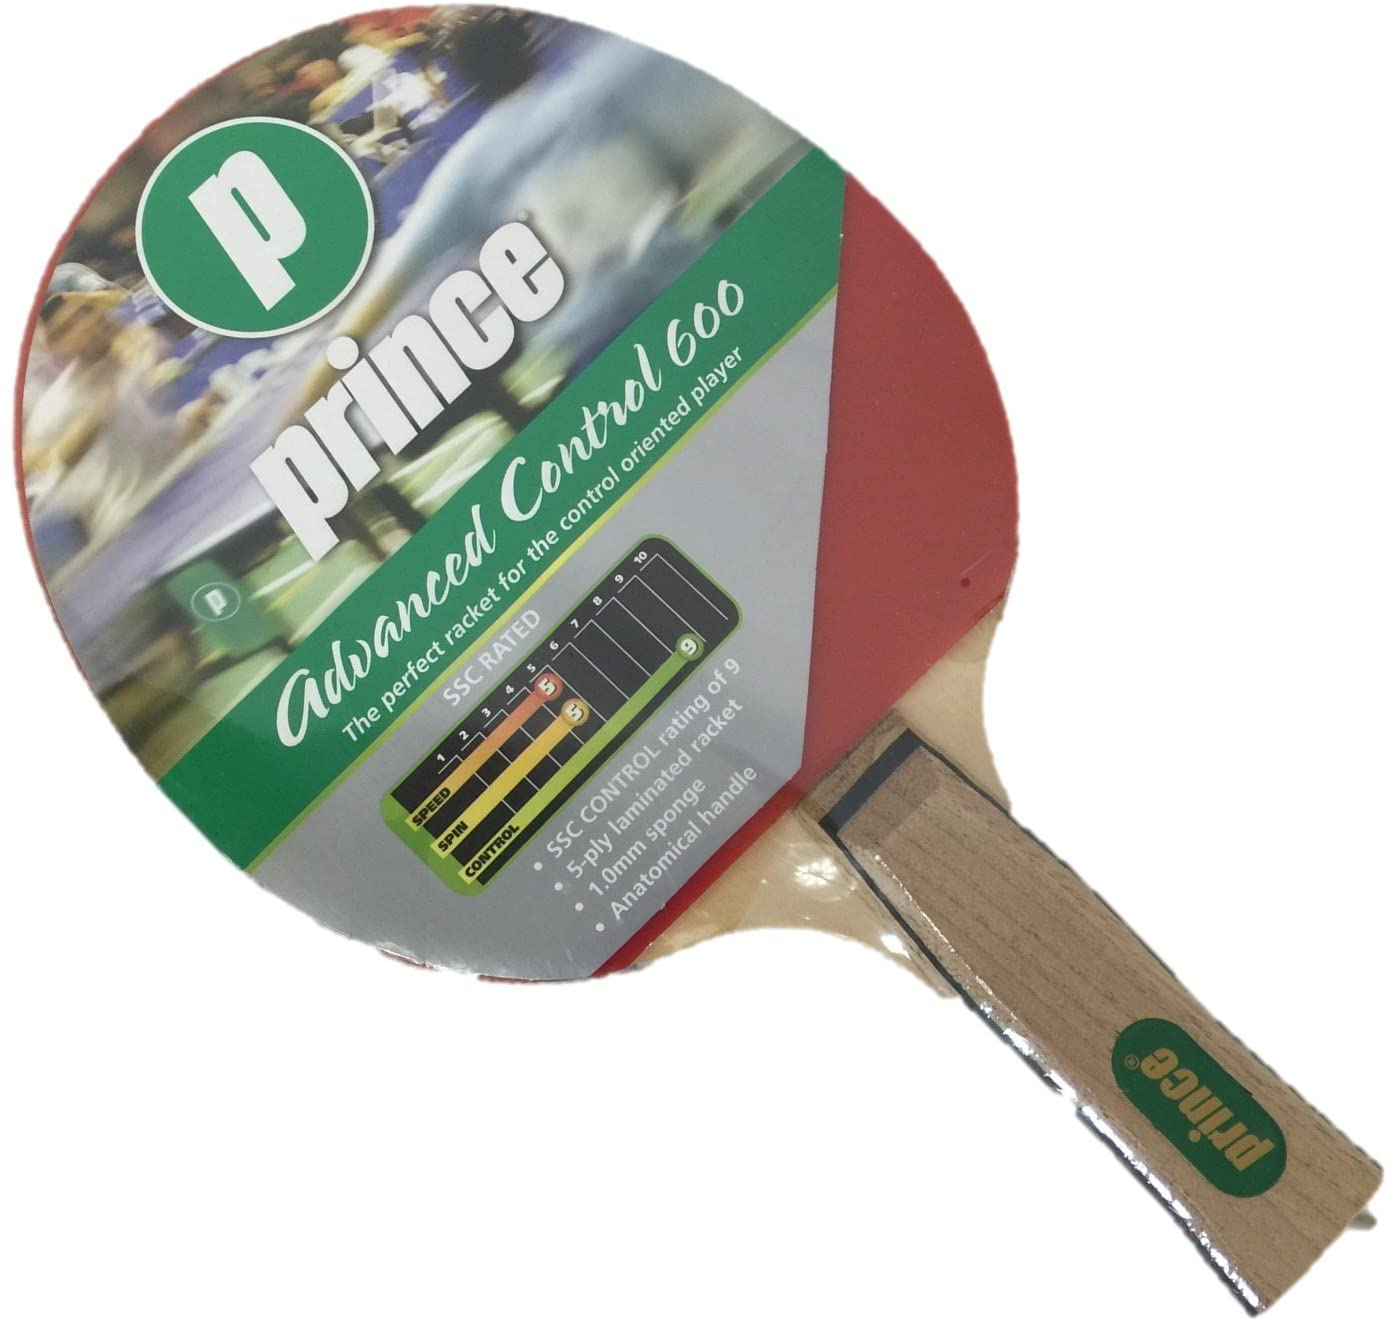 Advanced Control 600 Table Tennis Racket